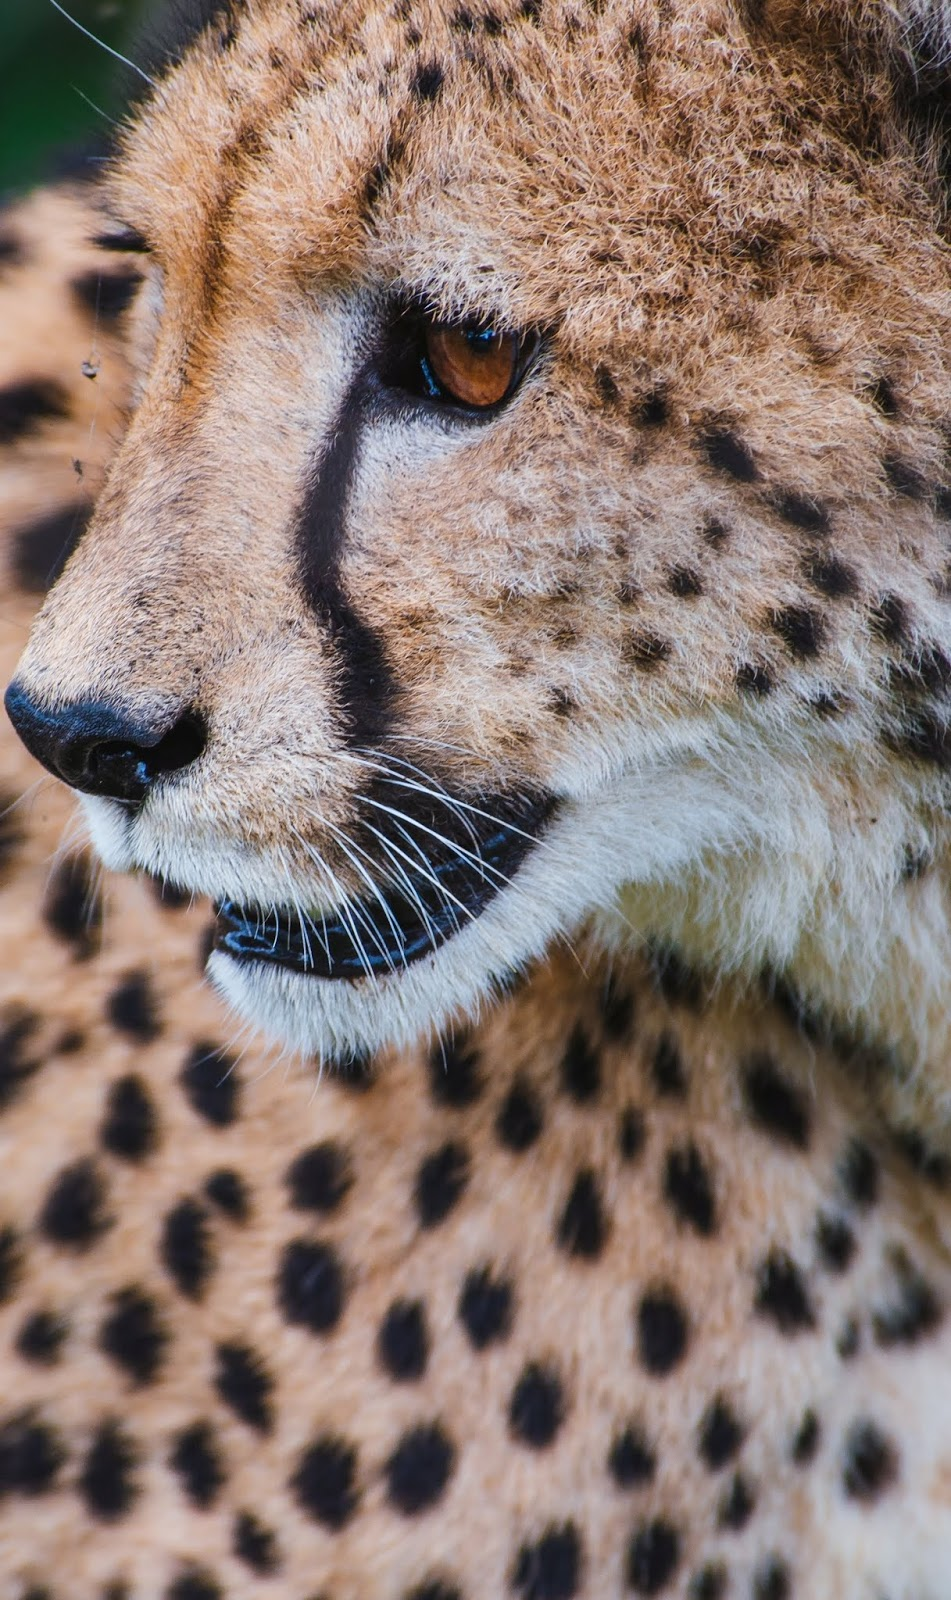 Cheetah up close.